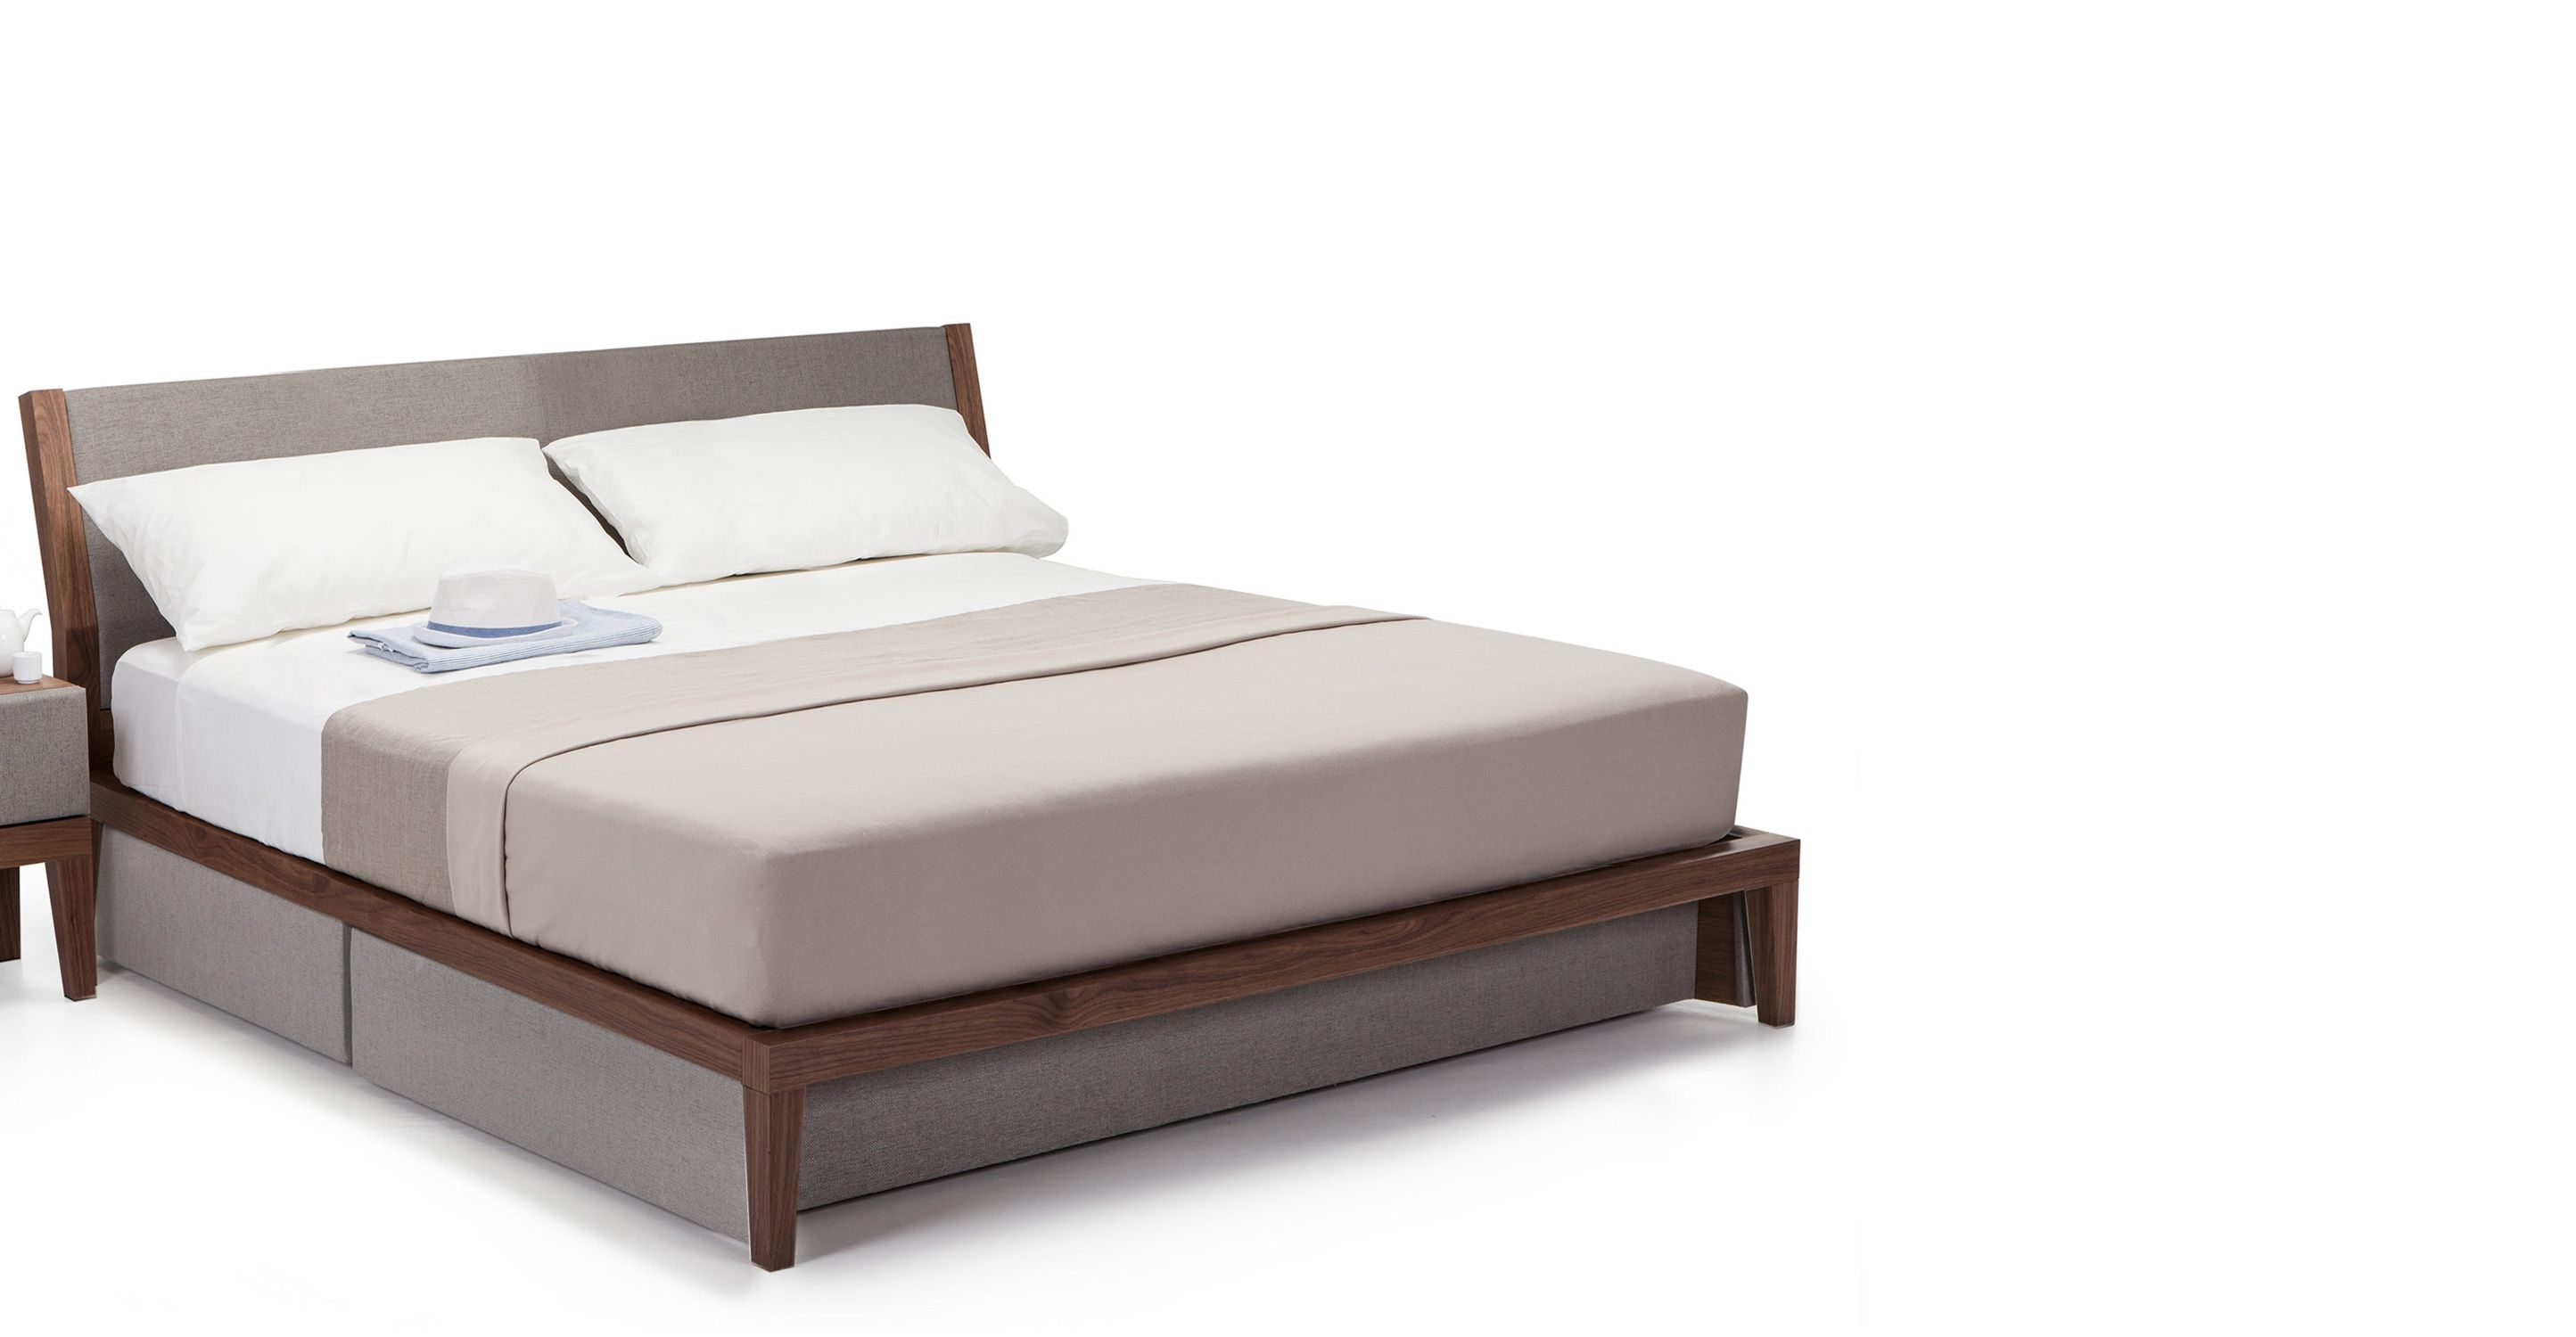 lansdowne kingsize bed with storage walnut and heron grey